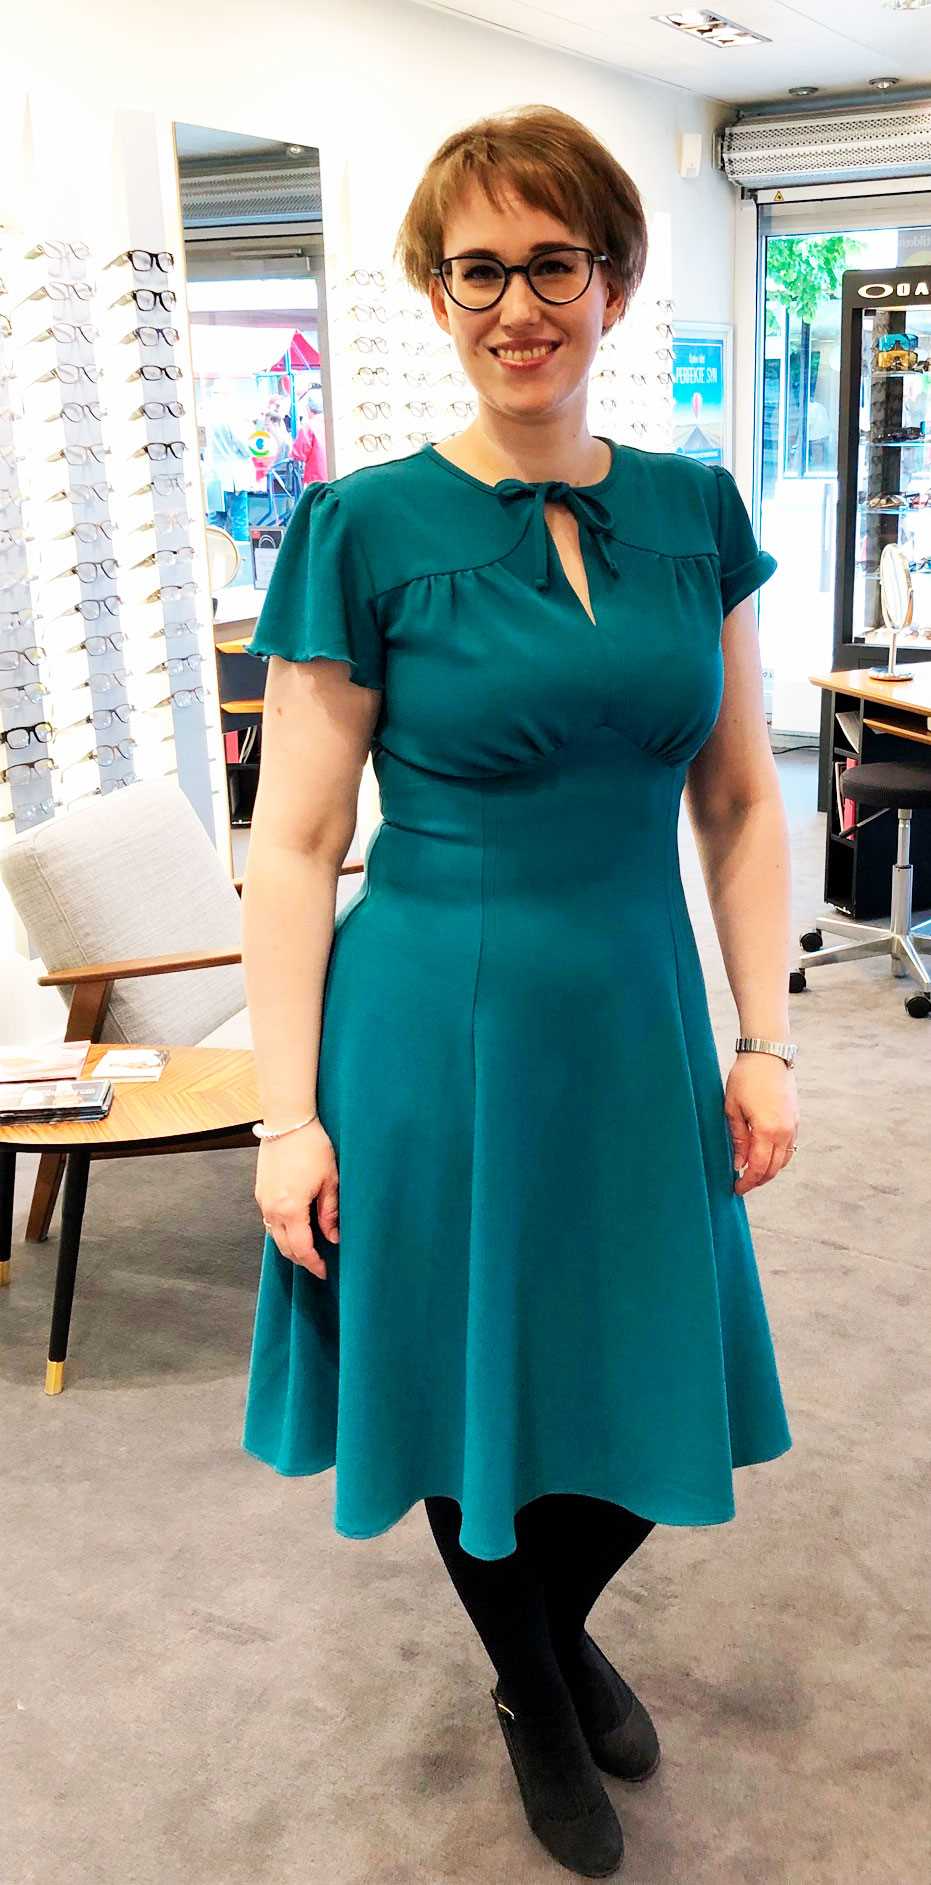 Beautiful vintage style grable dress from the house of foxy in teal